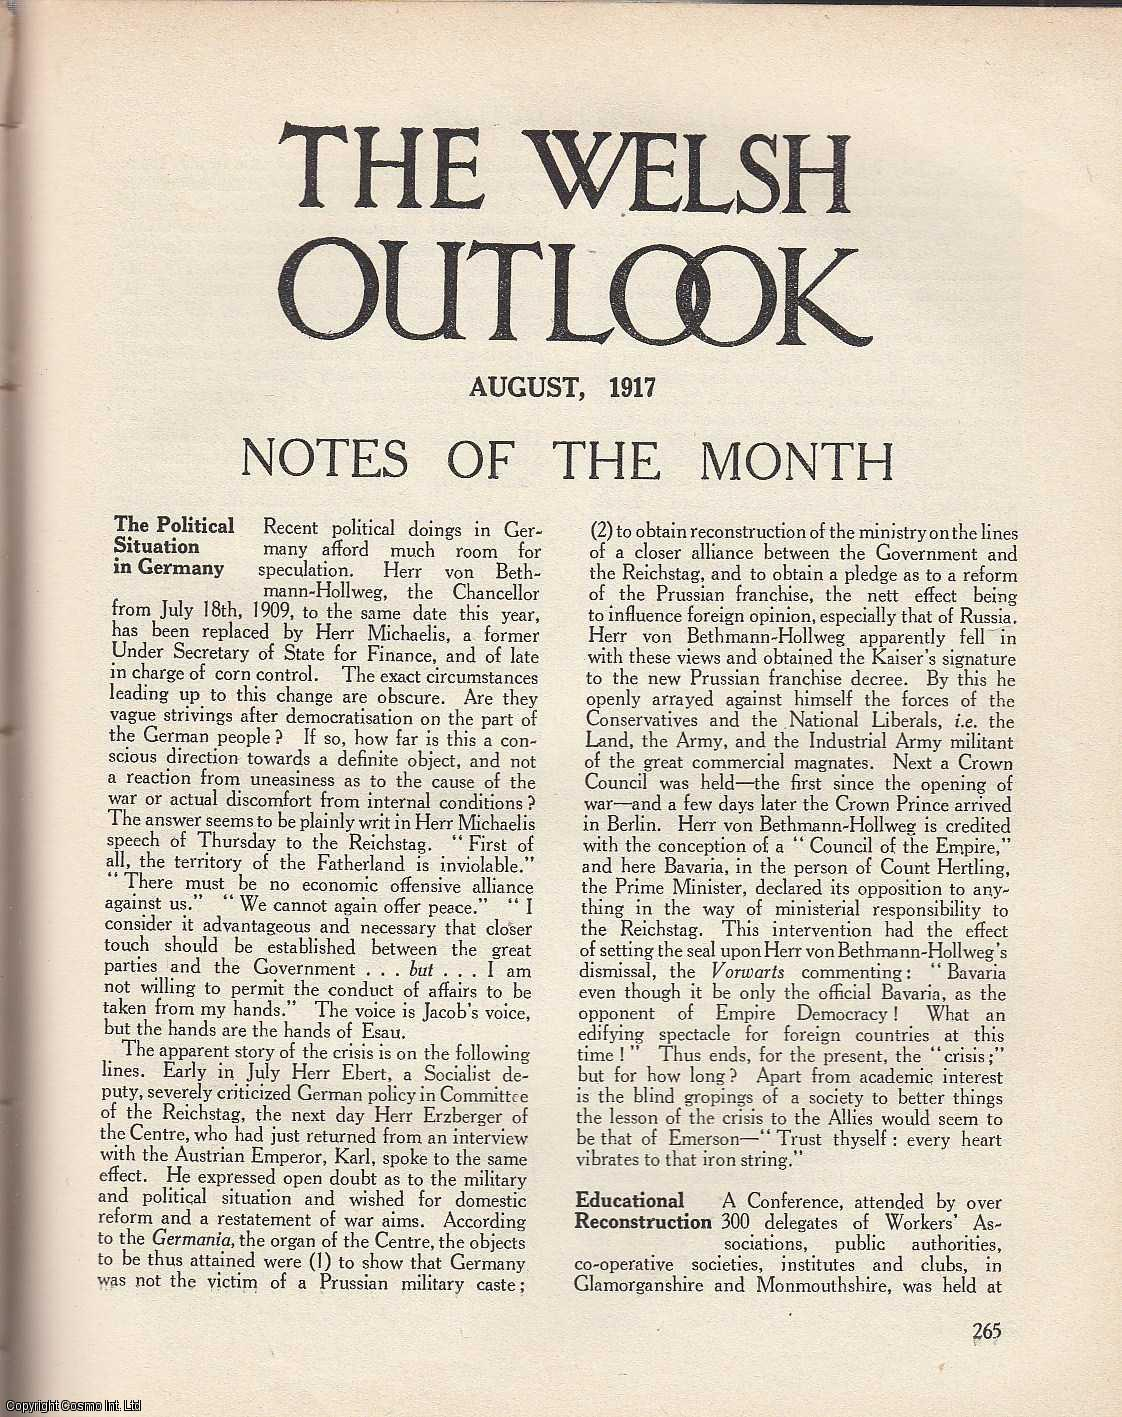 The Welsh Outlook. A Monthly Journal of National Social Progress. August, 1917. Contains; Educational Ideals by Harry R. Reichel; Among The Dunes; A Study in Constructive Politics by E.H.D.; South Wales Railway Systems: A Significant Appointment by D.E.; Julien Lemordant by H.T.E.; Welsh Inn Lore by W.T. Jordan; Labour Problems: The Industrial Situation after The War; The Social Outlook; Mysticism by D.E.; Julia's Tune by P.E.F. Thomas; Songs from Flanders by A.G. Prys-Jones., Thomas Jones (Editor)